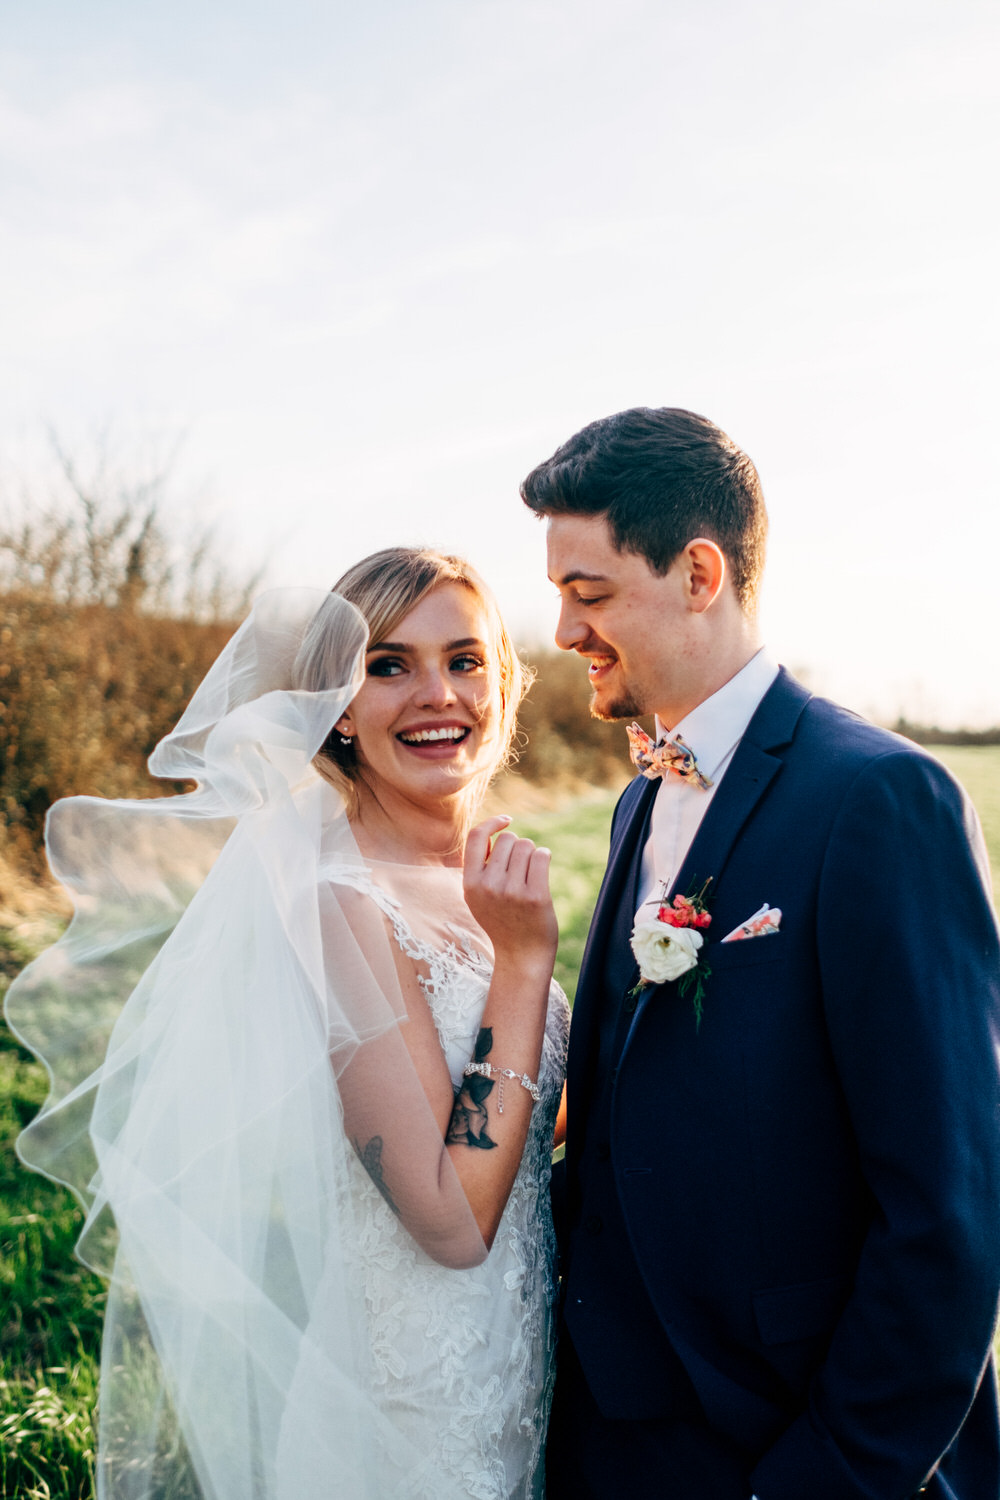 southend barns wedding photography sussex